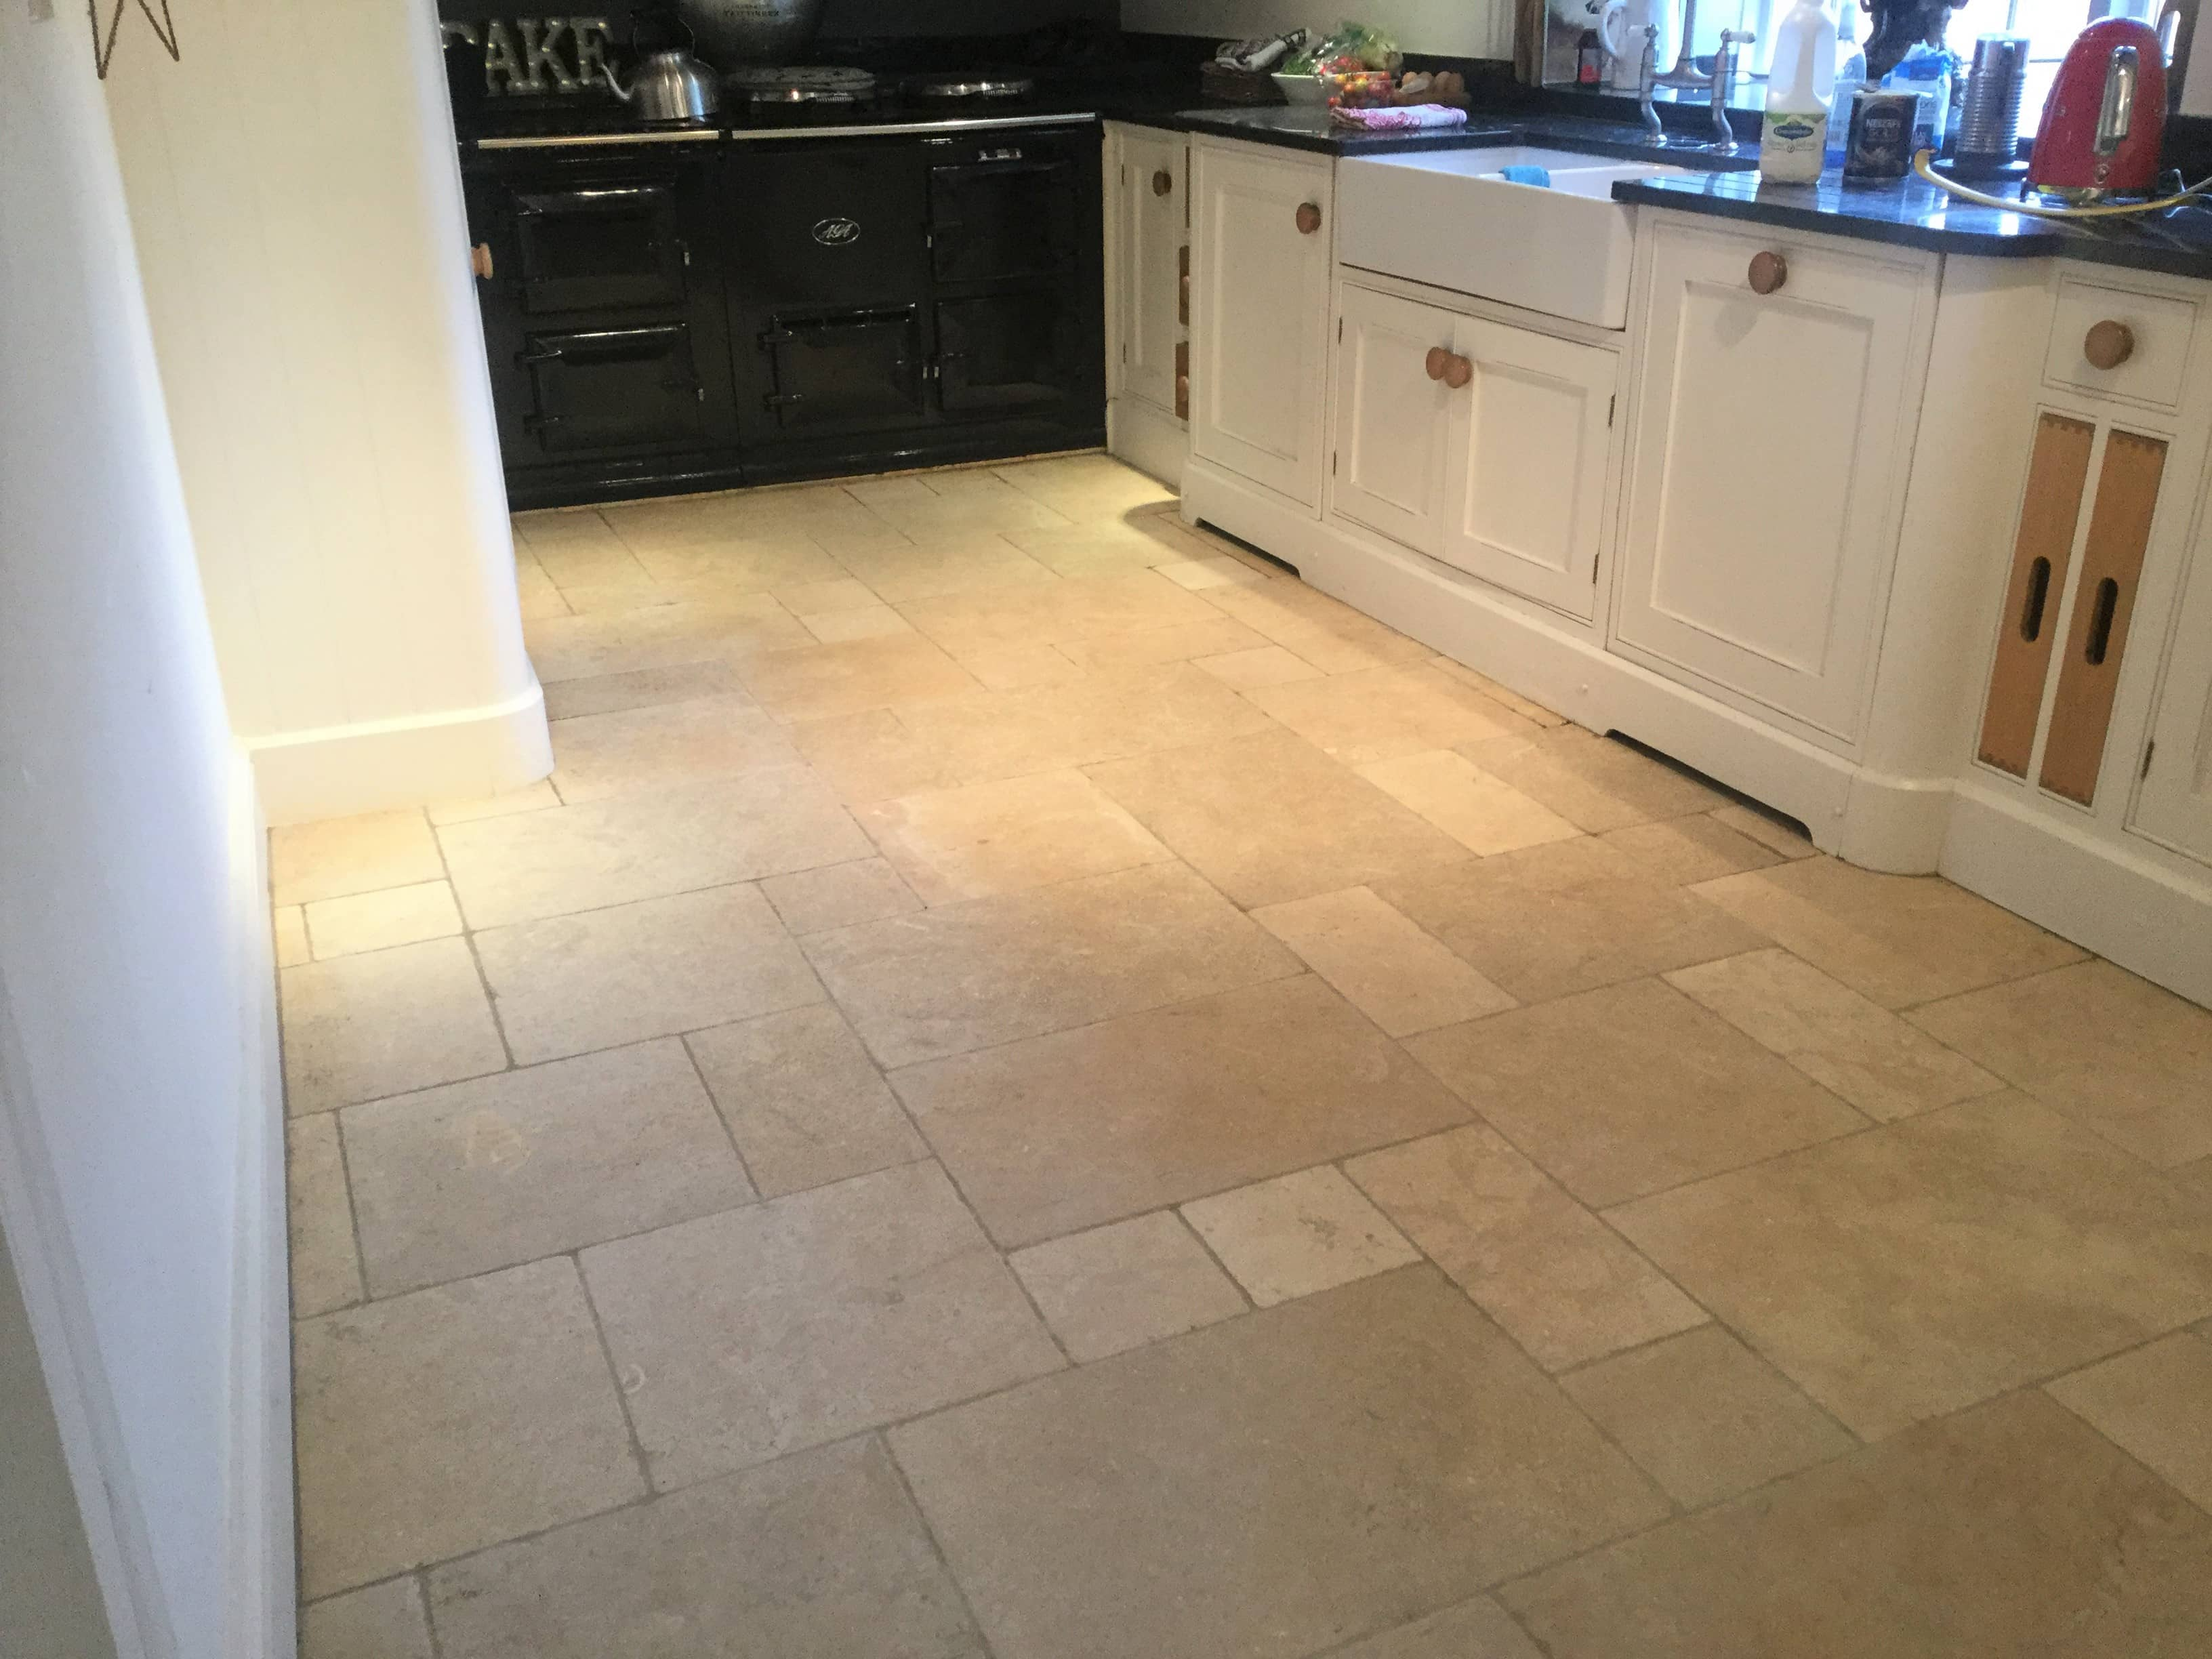 Limestone Kitchen Floor After Renovation Yelvertoft